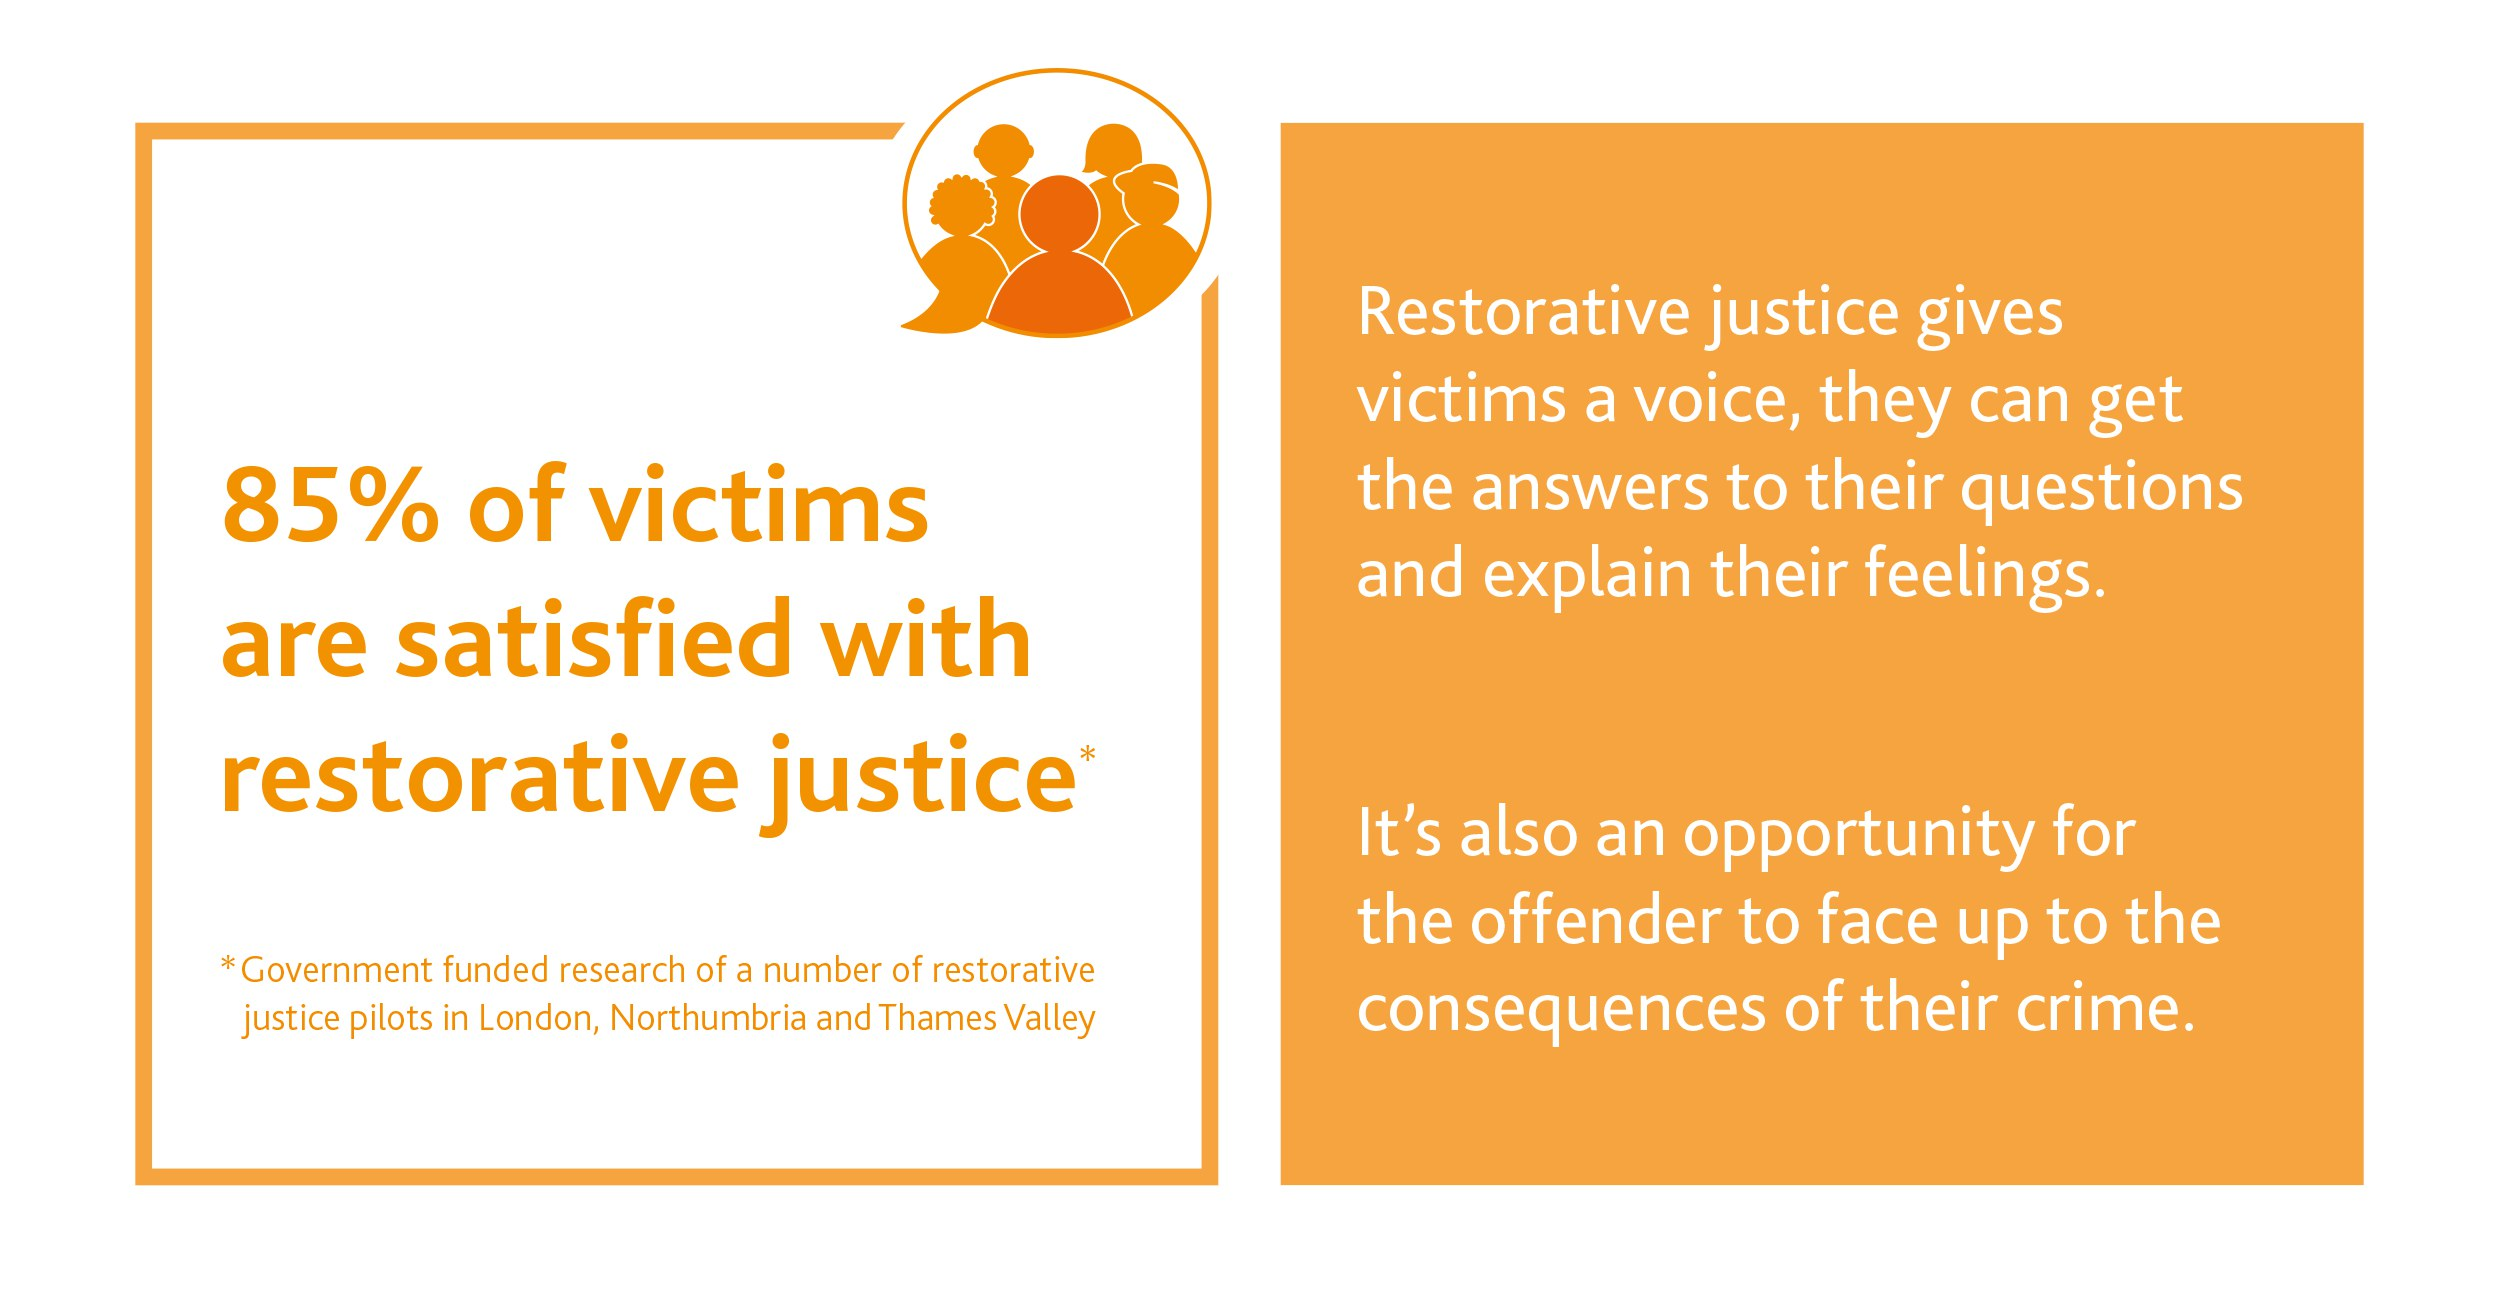 restorative justice week 5 Restorative justice is an effective alternative to punitive responses to wrongdoing inspired by indigenous traditions, it brings together persons harmed with persons responsible for harm in a safe and respectful space, promoting dialogue, accountability, and a stronger sense of community .